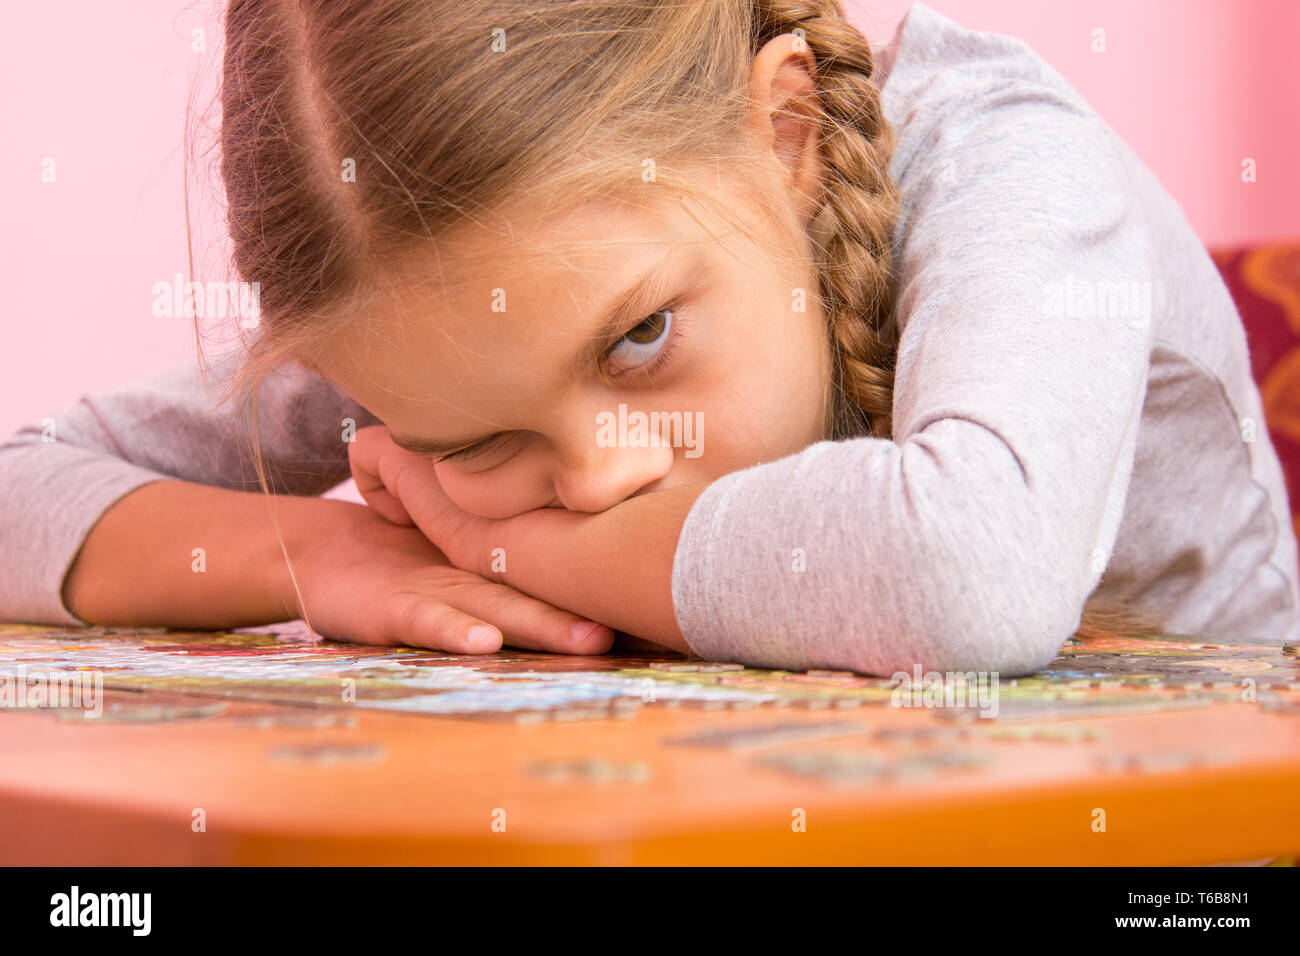 The girl was very tired assemble a picture from puzzles - Stock Image